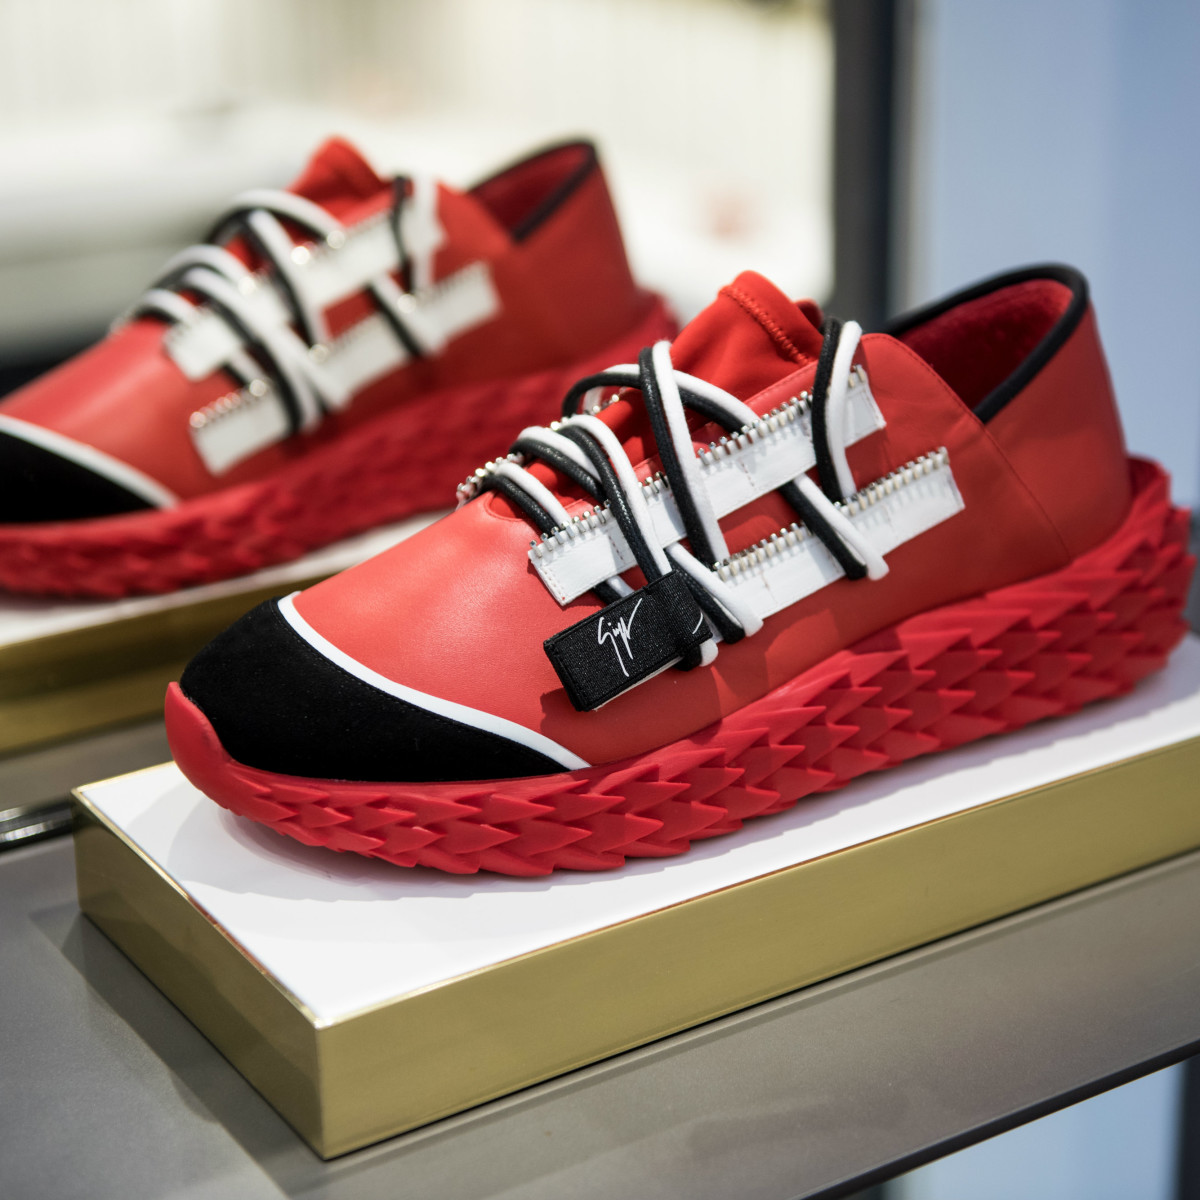 1ddb307566451 Rockets star and luxe international designer unveil stylish sneaker ...